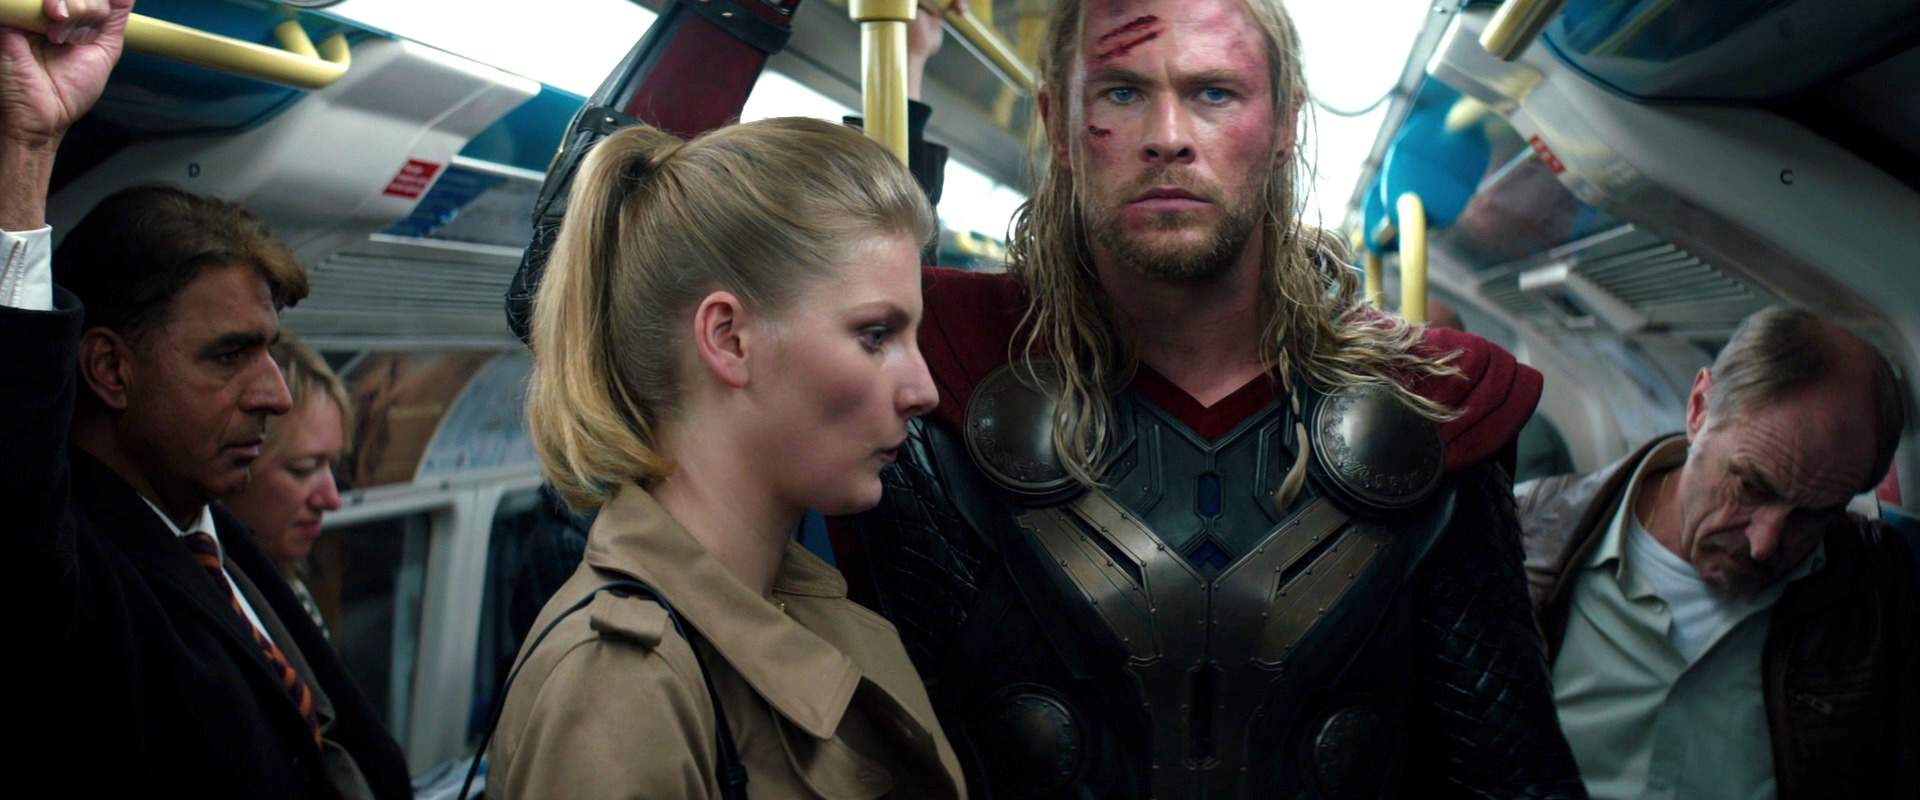 Just think, subway lady, if you had hit Thor with your car YOU'D be the love of his life right now!